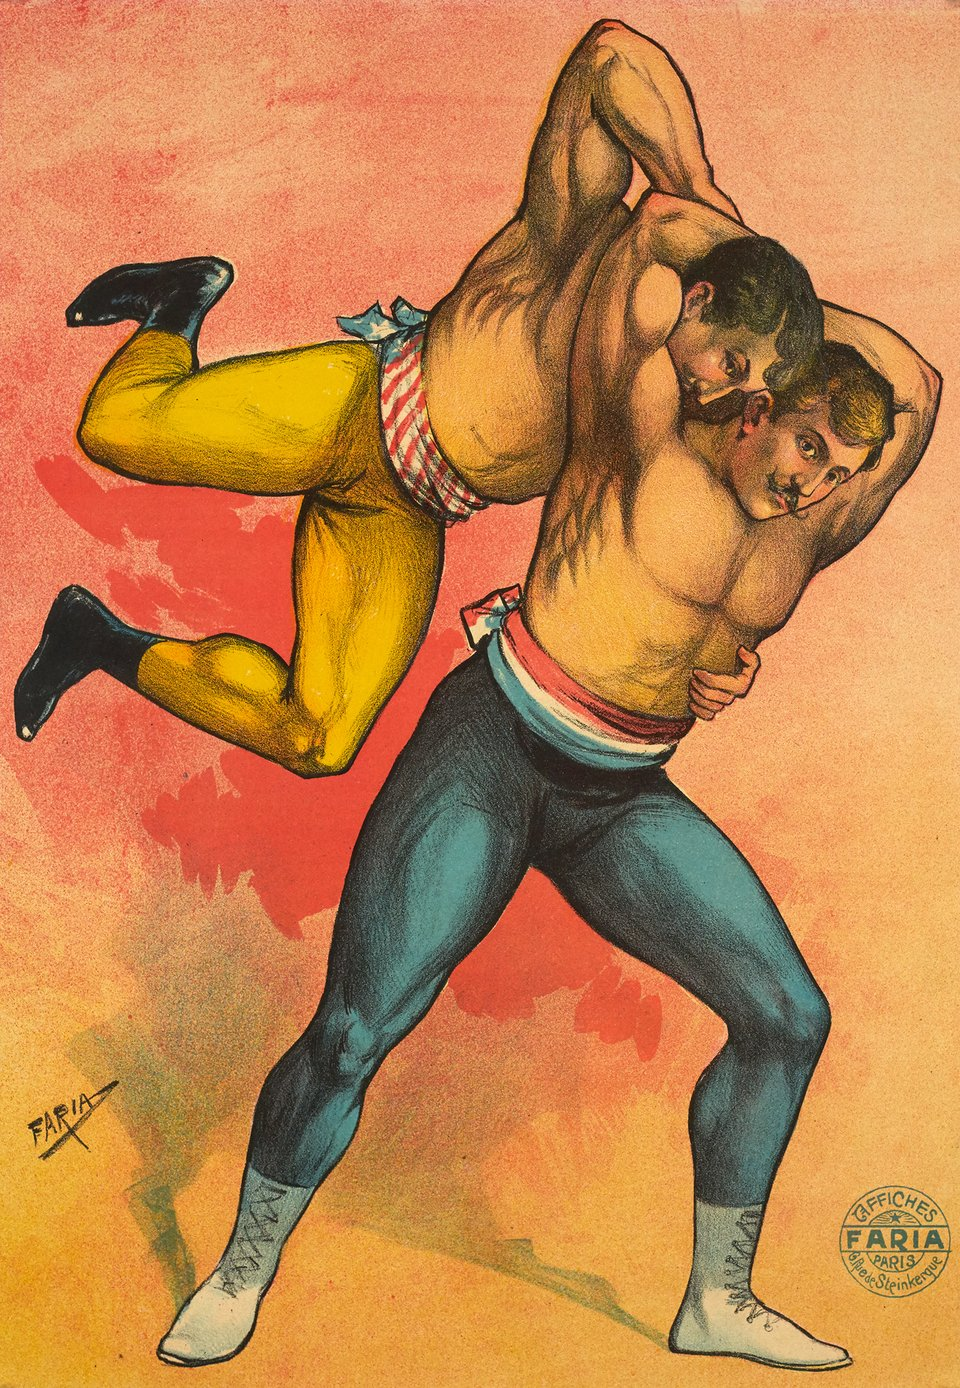 2 wrestlers, before letter – Vintage poster – De Faria Candido Aragonese FARIA – 1900